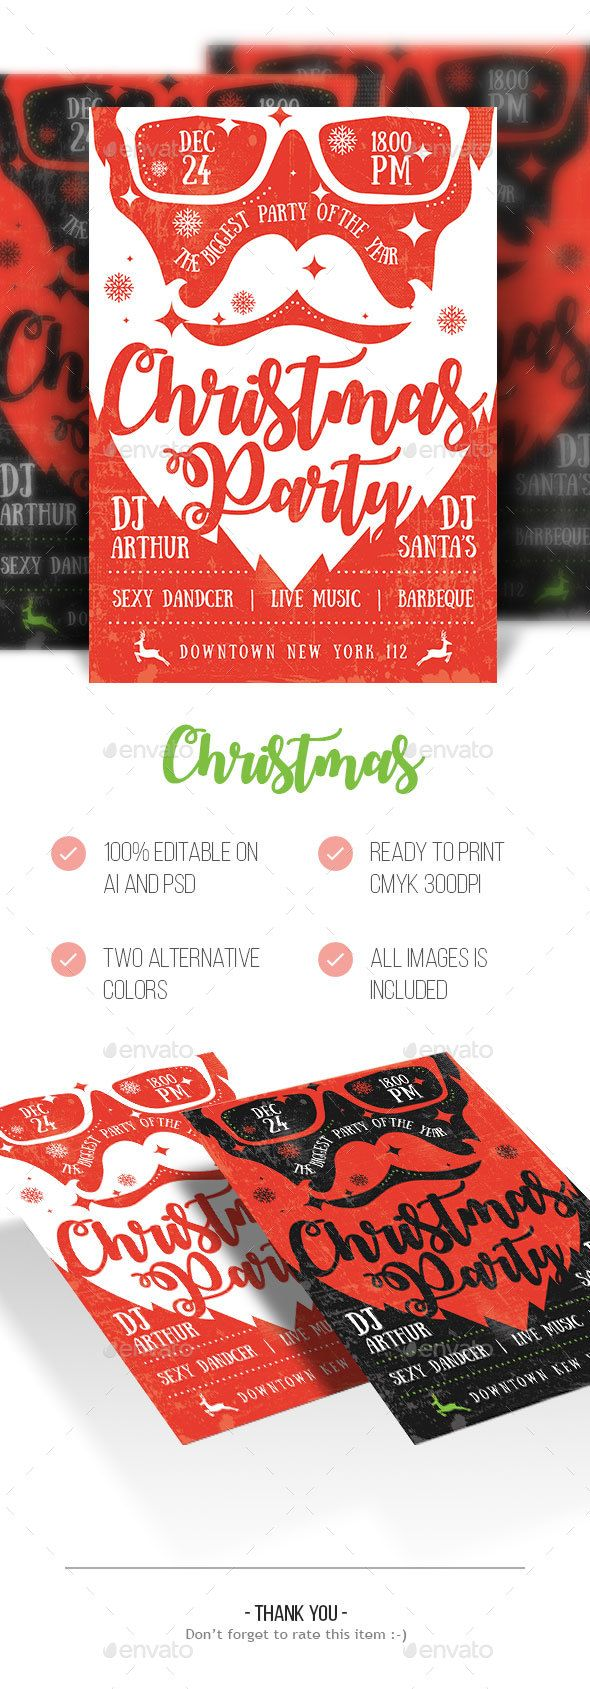 best images about christmas flyer templates christmas christmas flyeritem christmasflyer templatestemplate